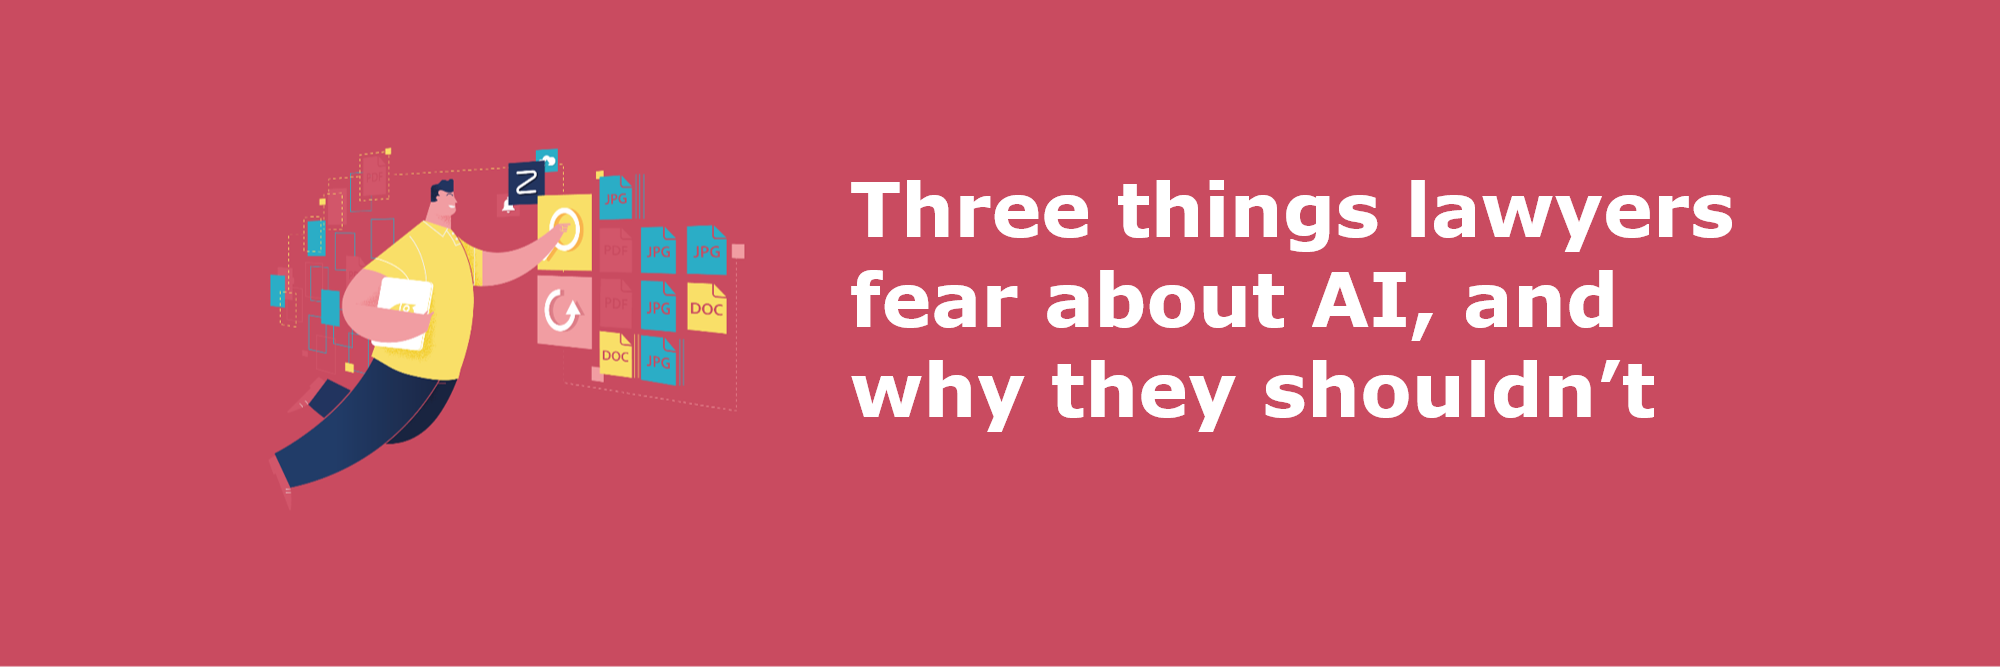 three things lawyers fear about ai and why they shouldn't - head